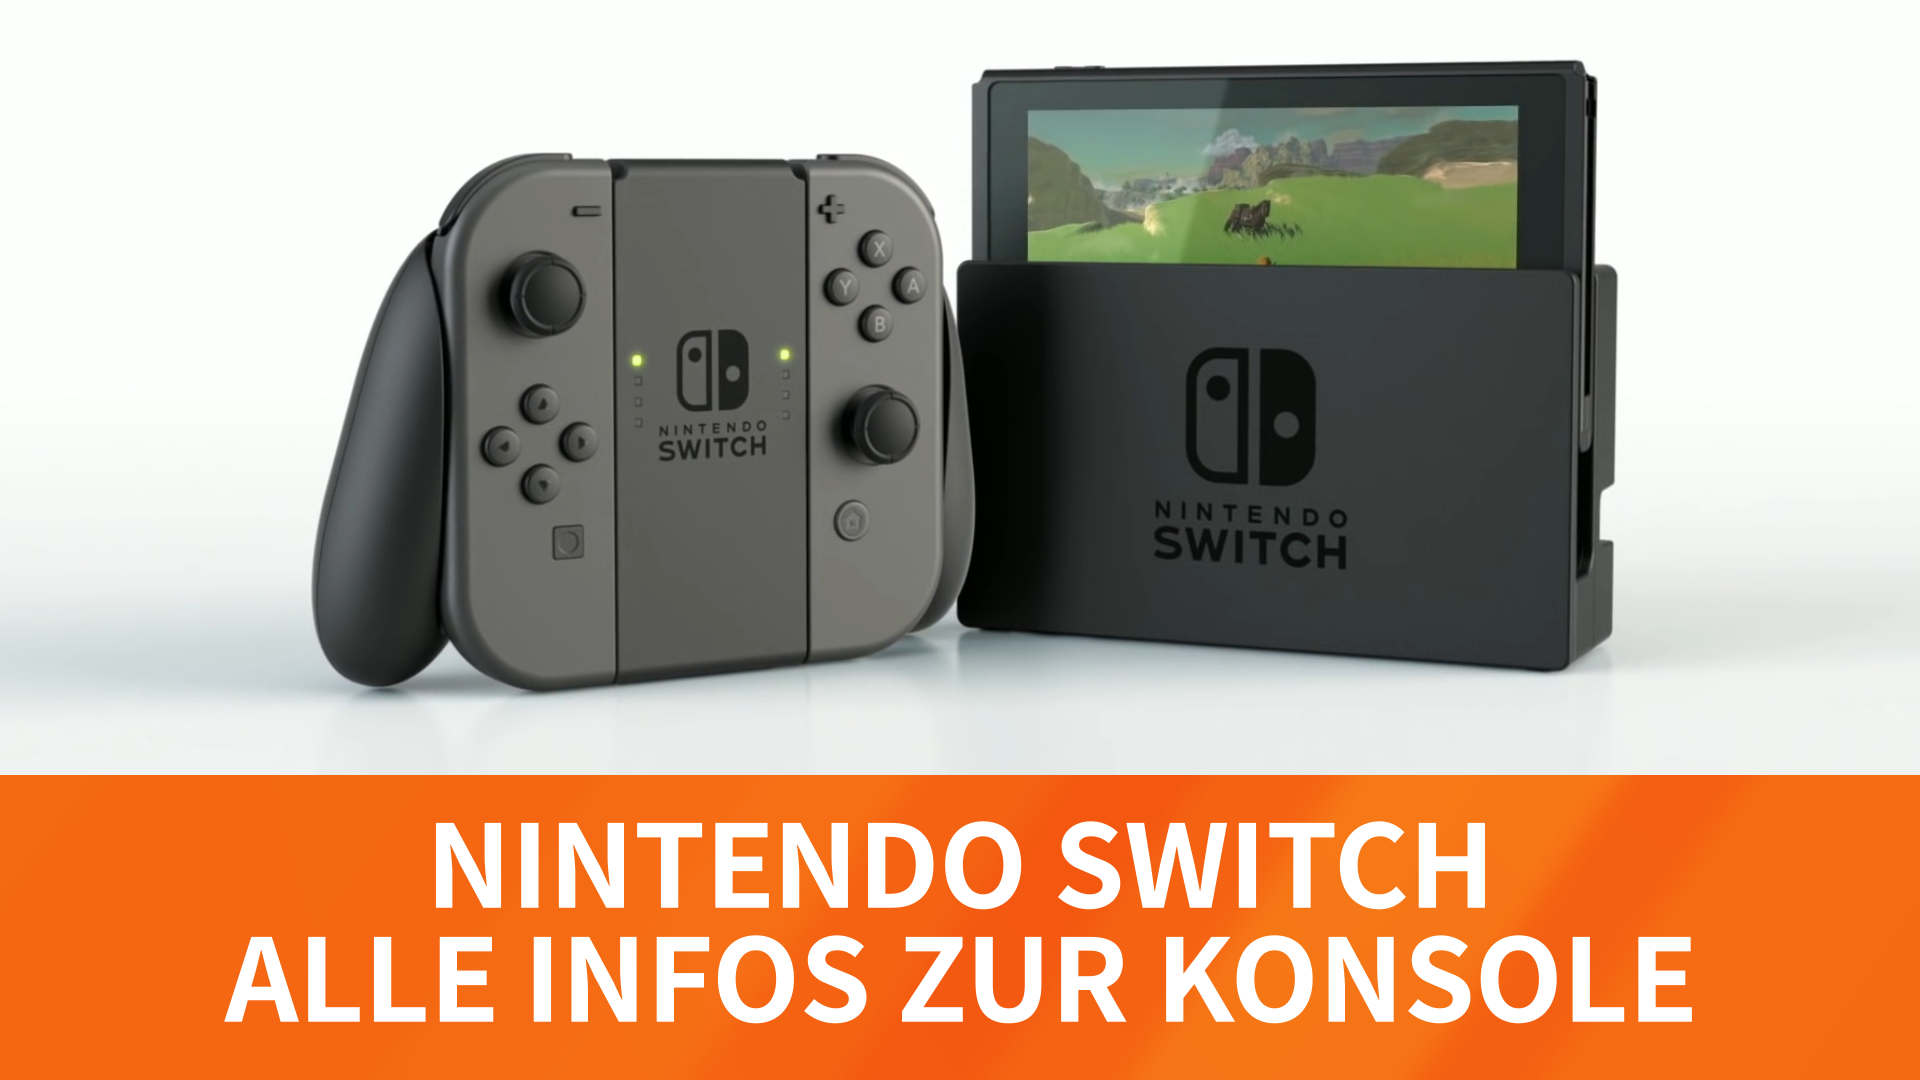 Nintendo Switch Sd Karte Maximale Größe.Nintendo Switch Alles Zur Konsole